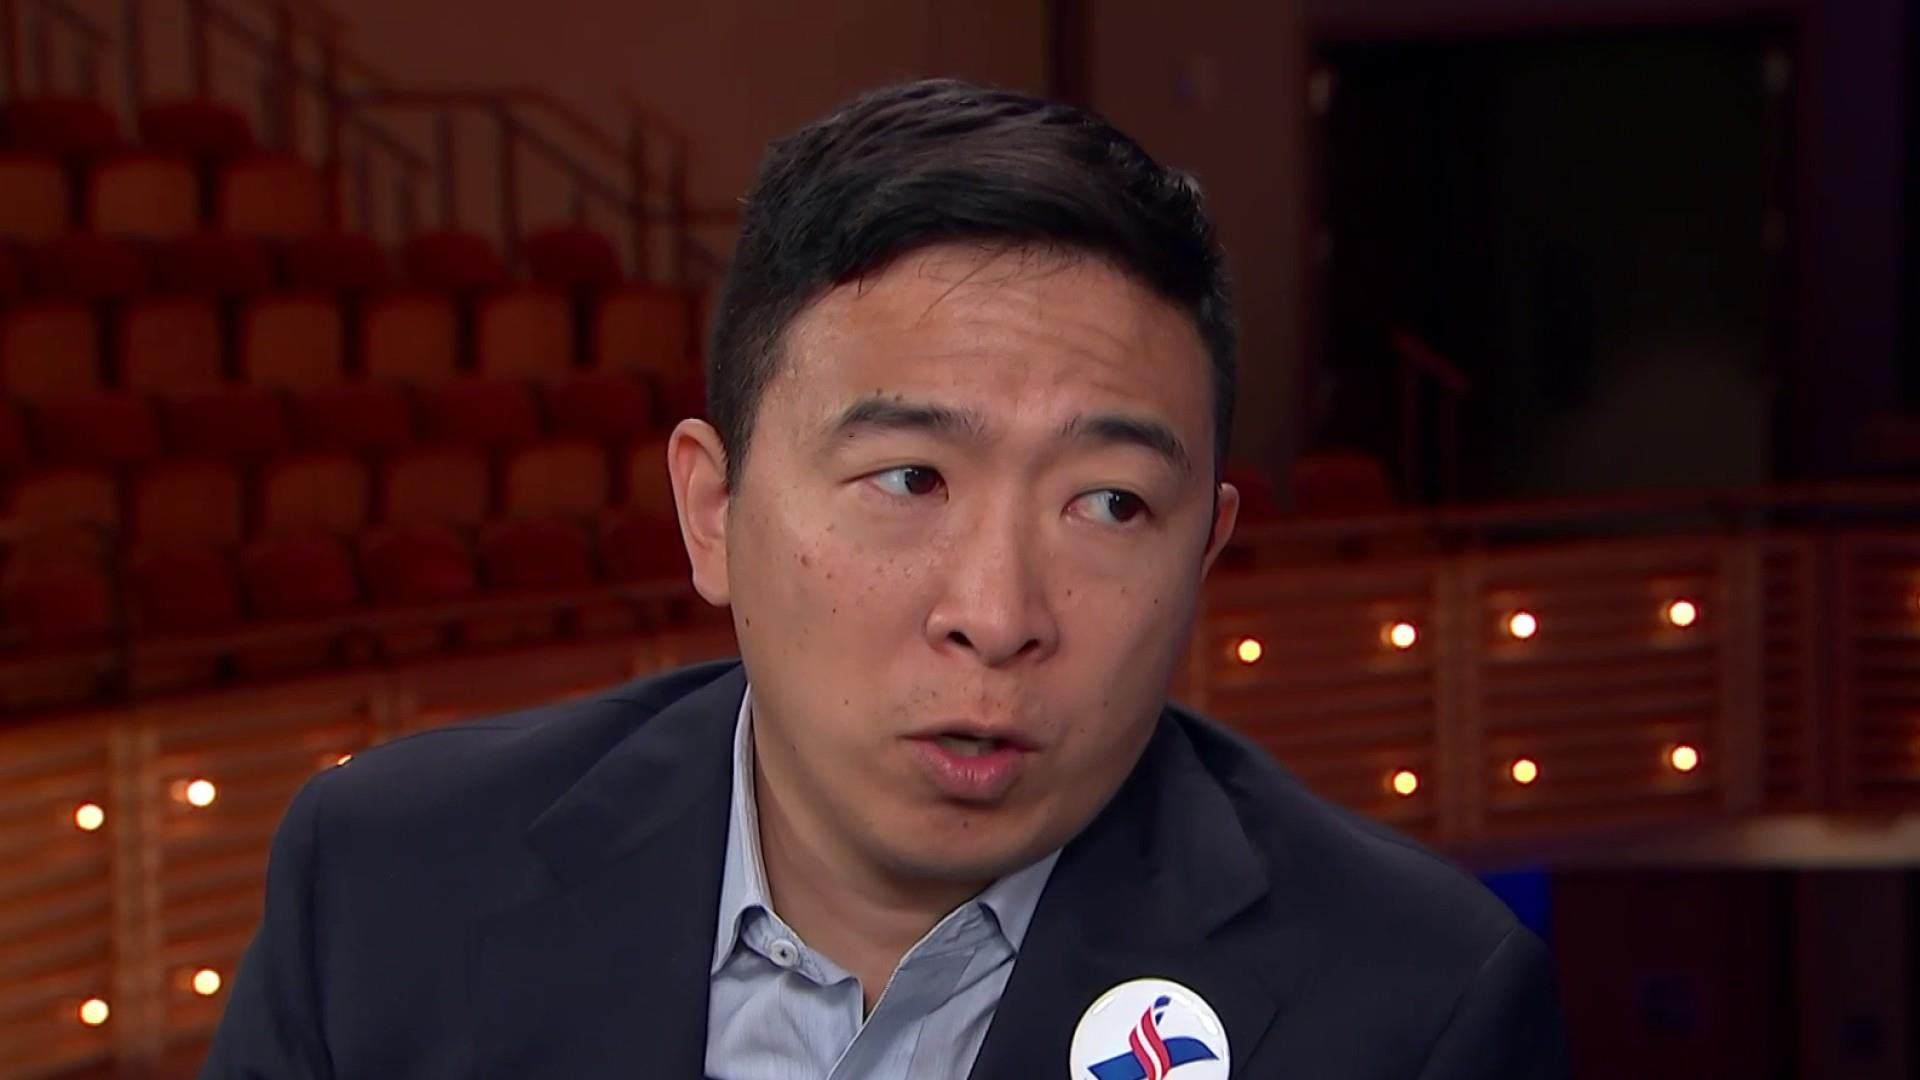 Andrew Yang: The wall is more of a symbol than a solution